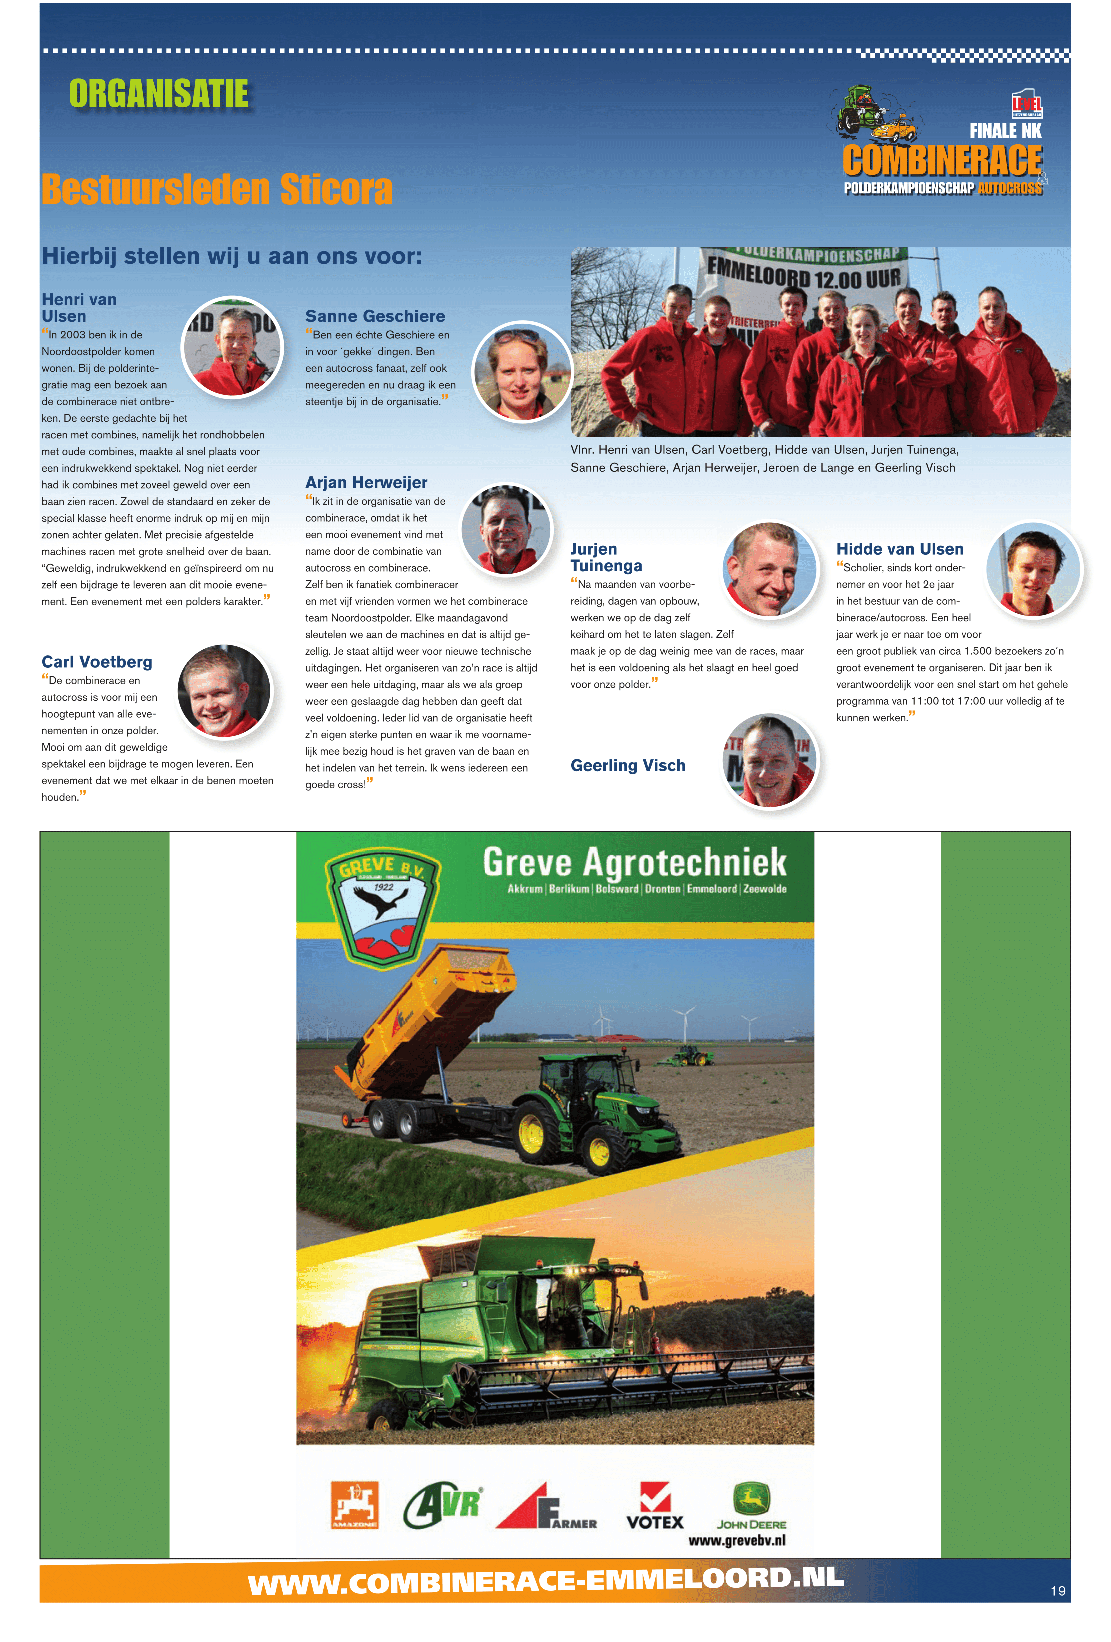 Emmeloord 2016 - pagina 19